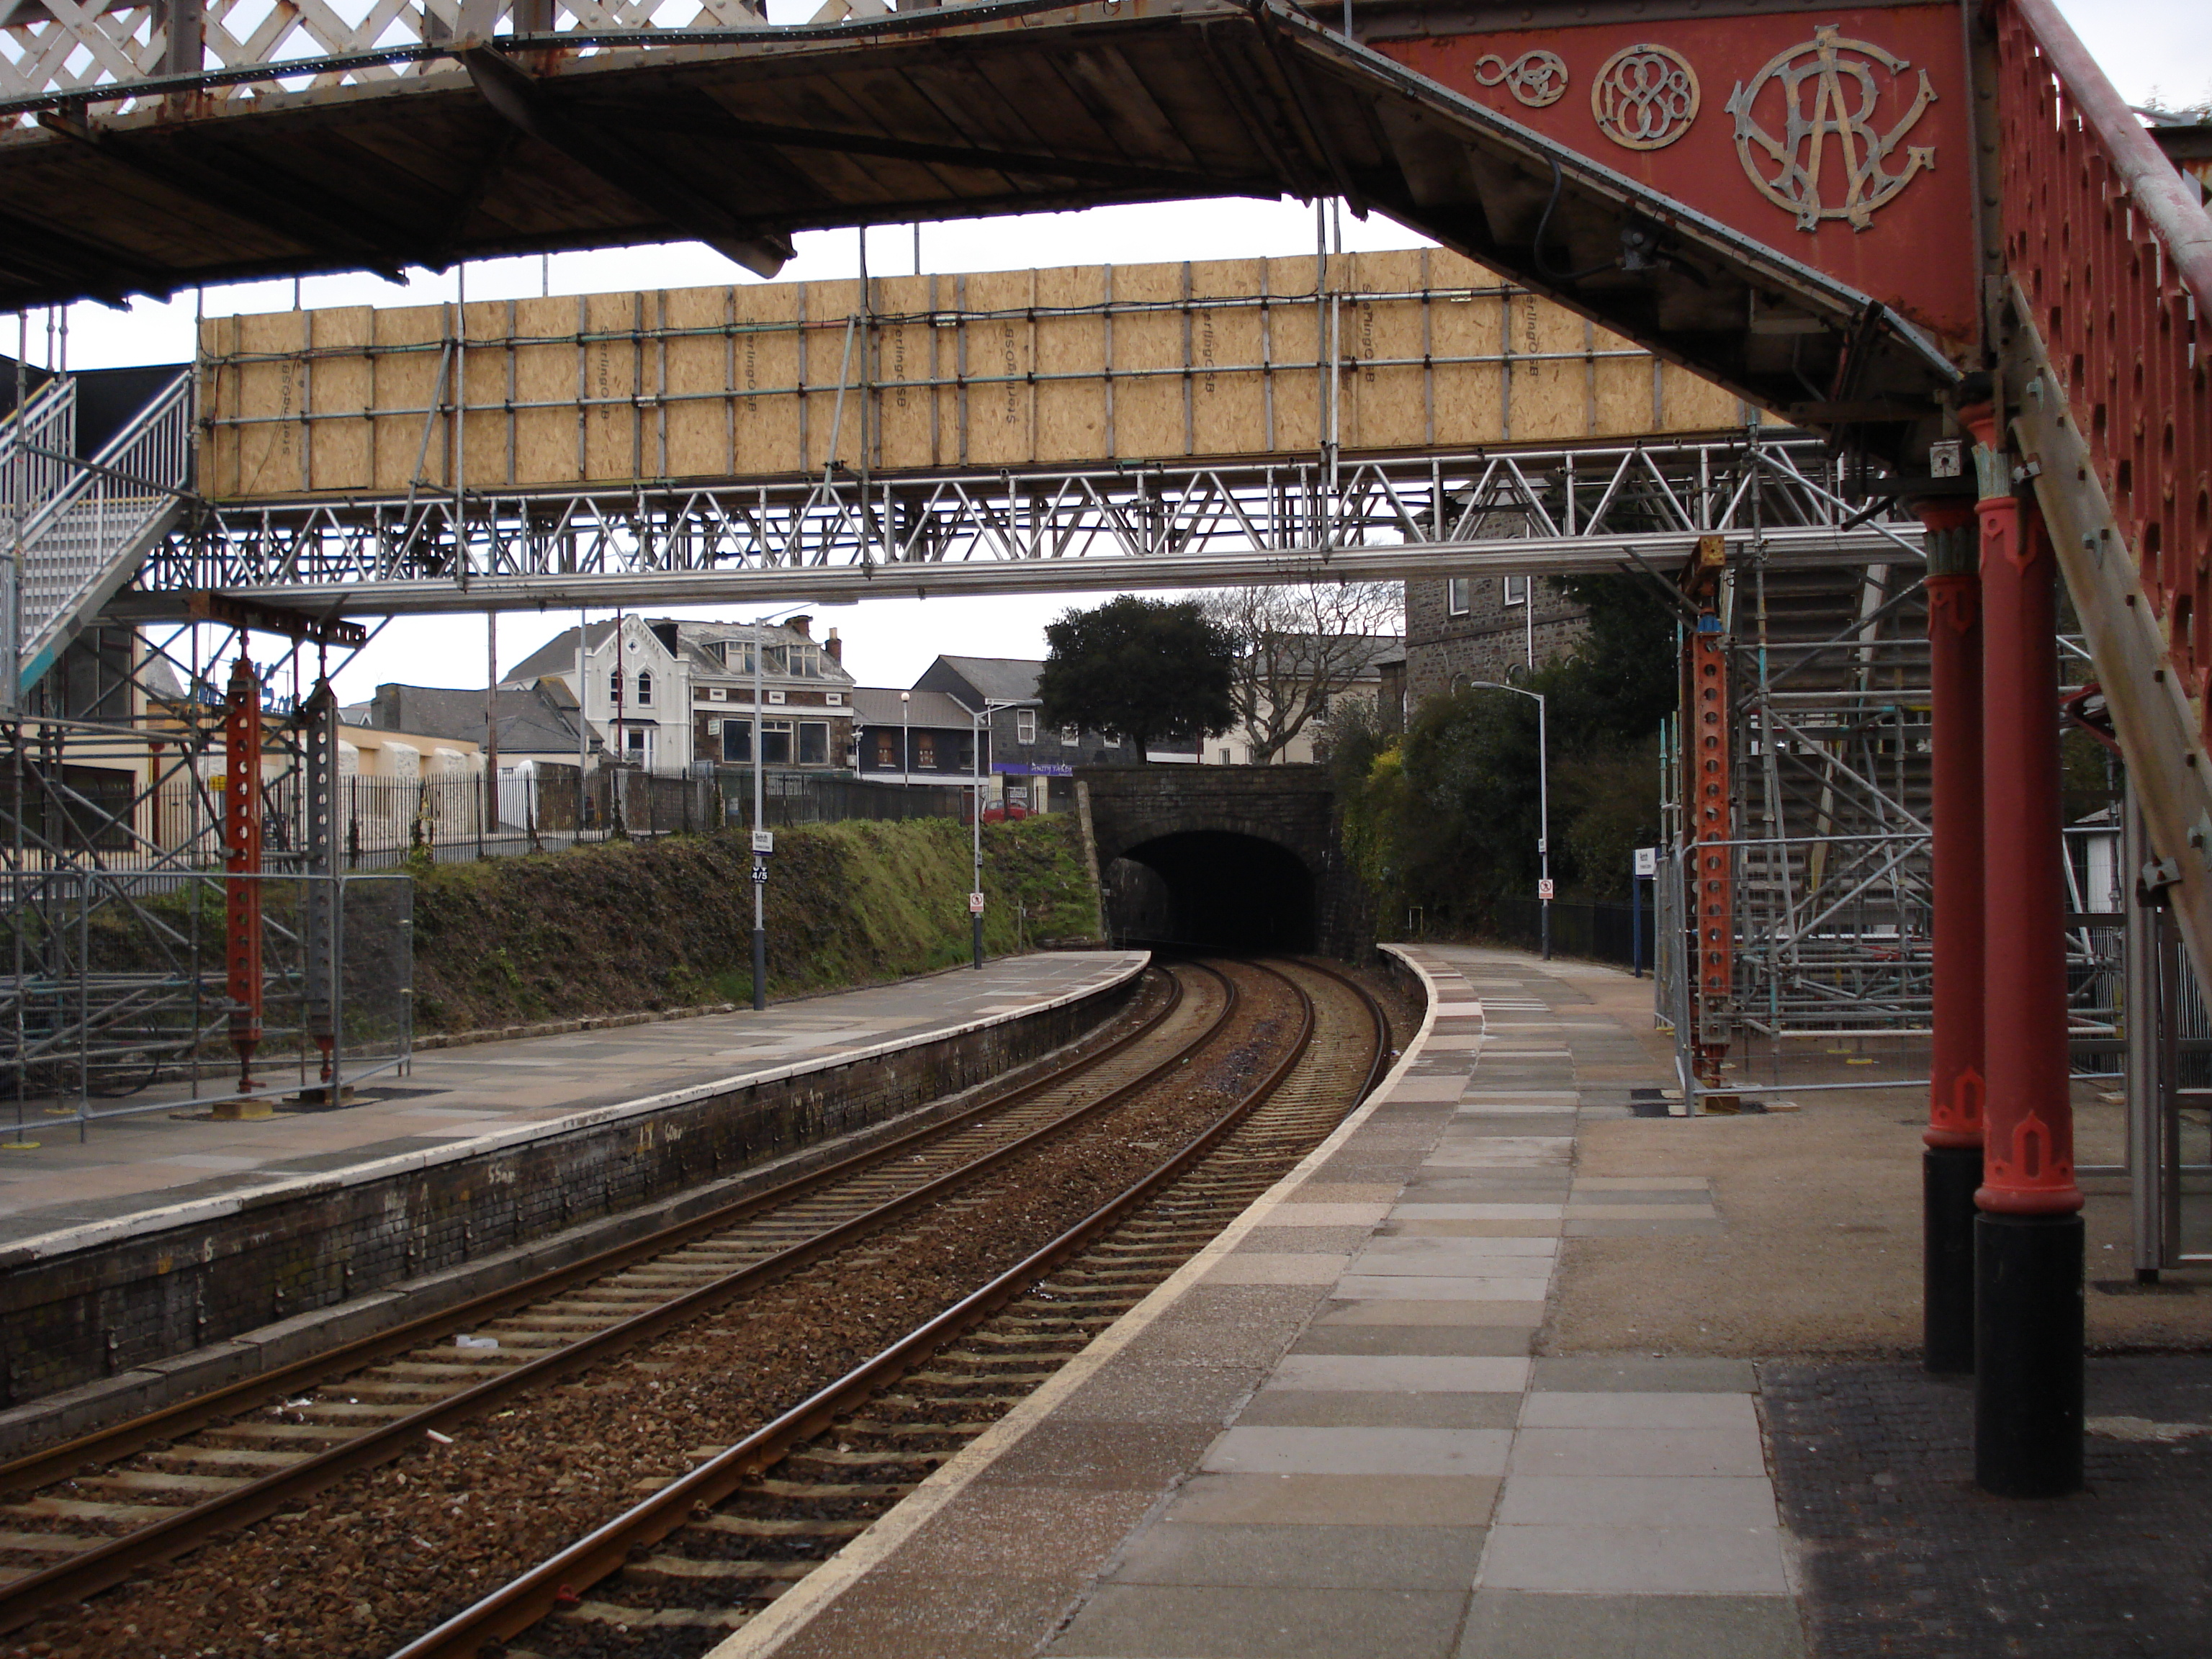 redruth-train-station-image-5